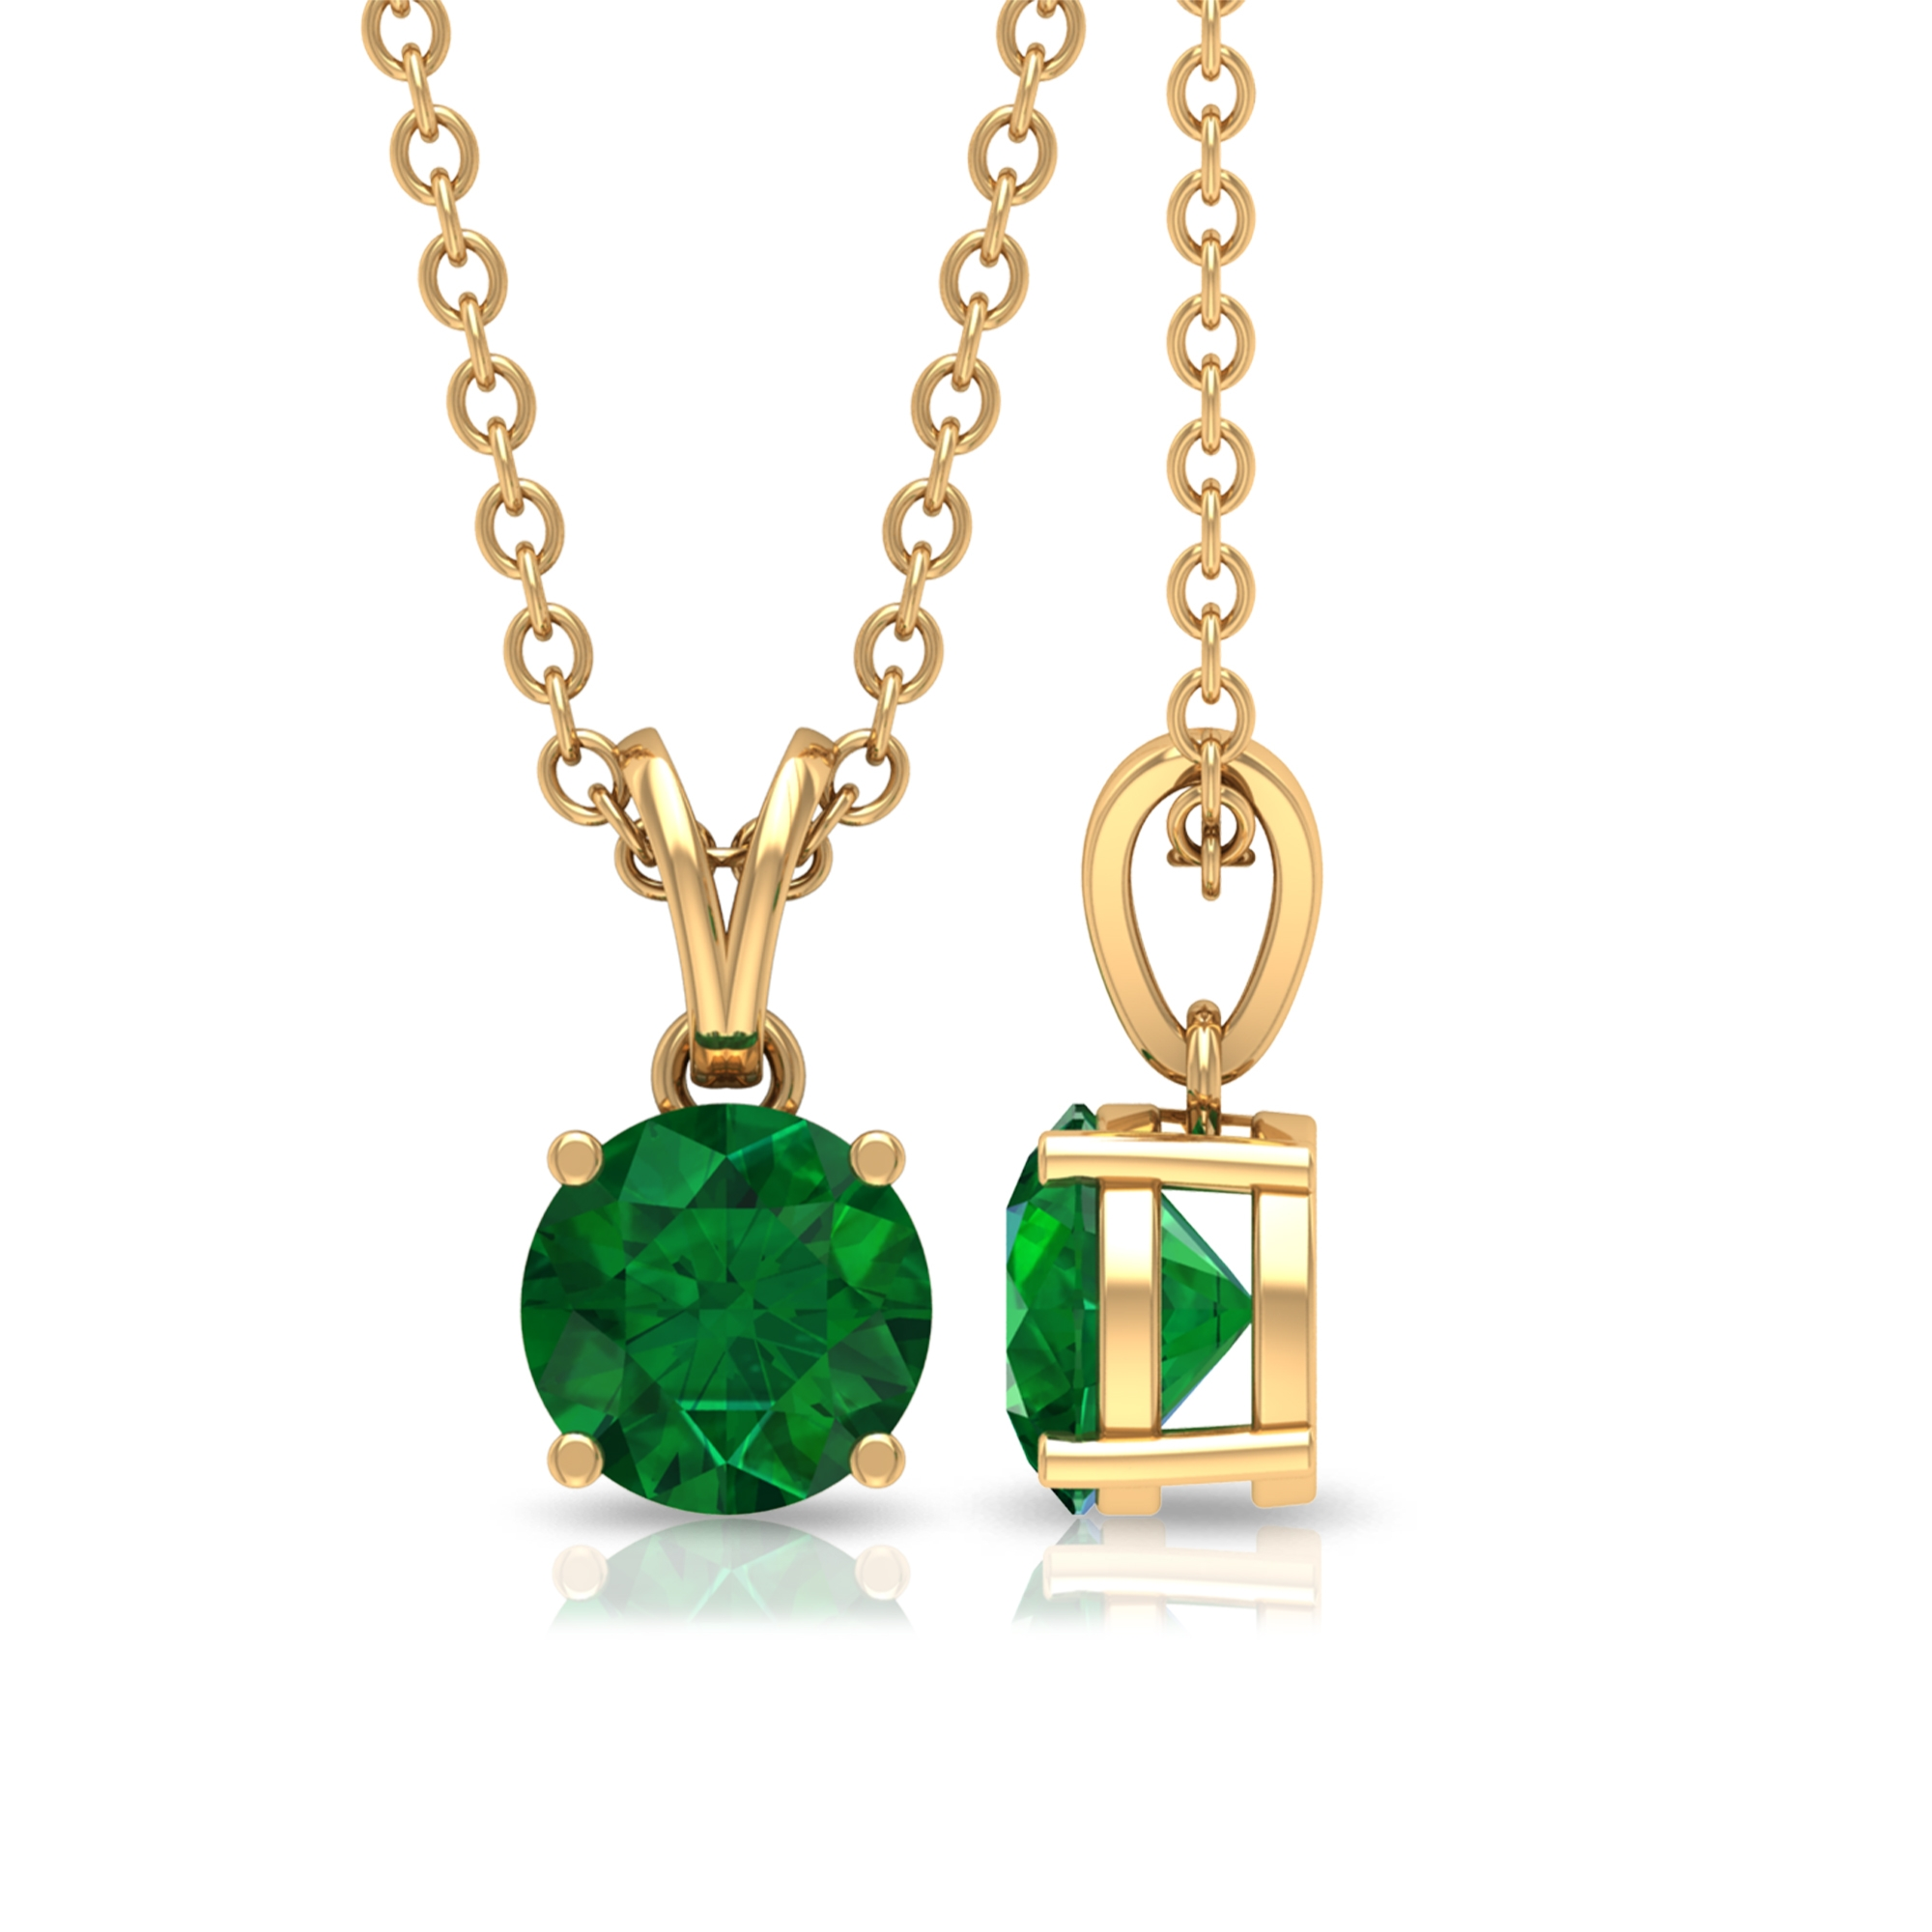 Four Prong Set 5 MM Round Cut Emerald Solitaire Pendant Necklace with Rabbit Ear Bale